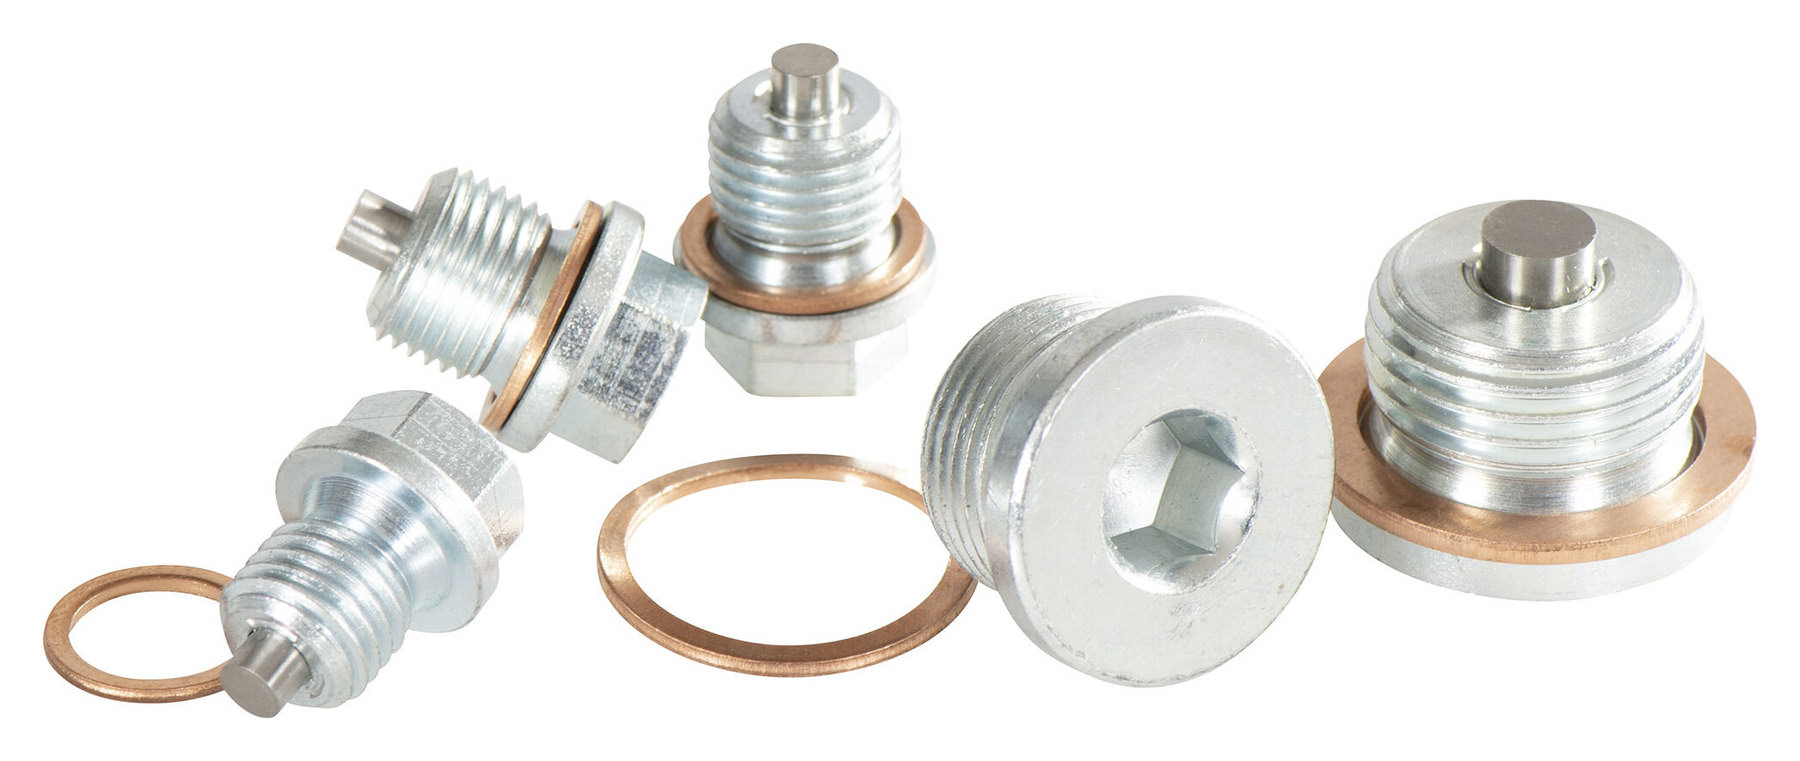 Acquire Oil drain plug through the femco home page without internal problems